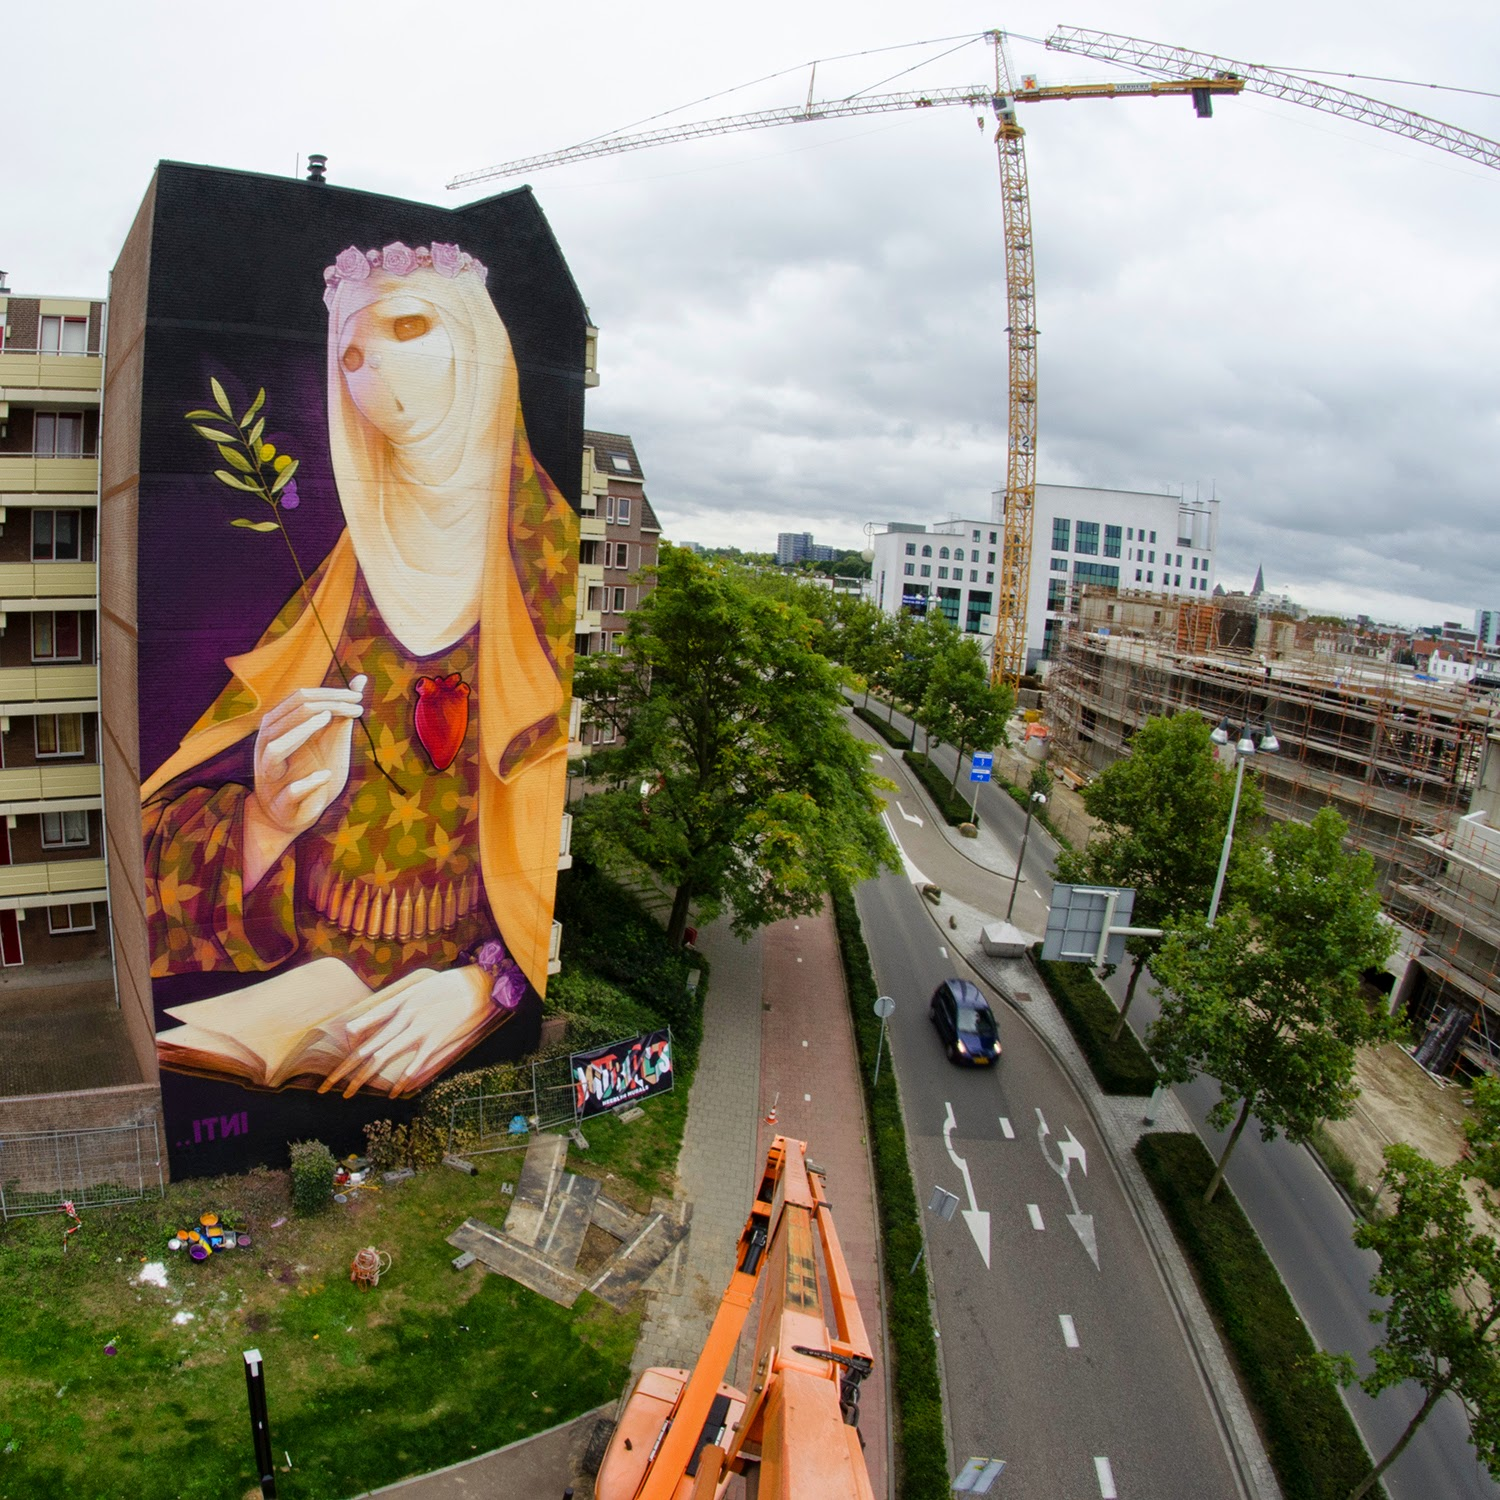 While we last heard from him earlier this Summer in Ibiza, INTI is now in Netherlands where he was invited by the HRLN project to paint on the streets of Heerlen in Netherlands.